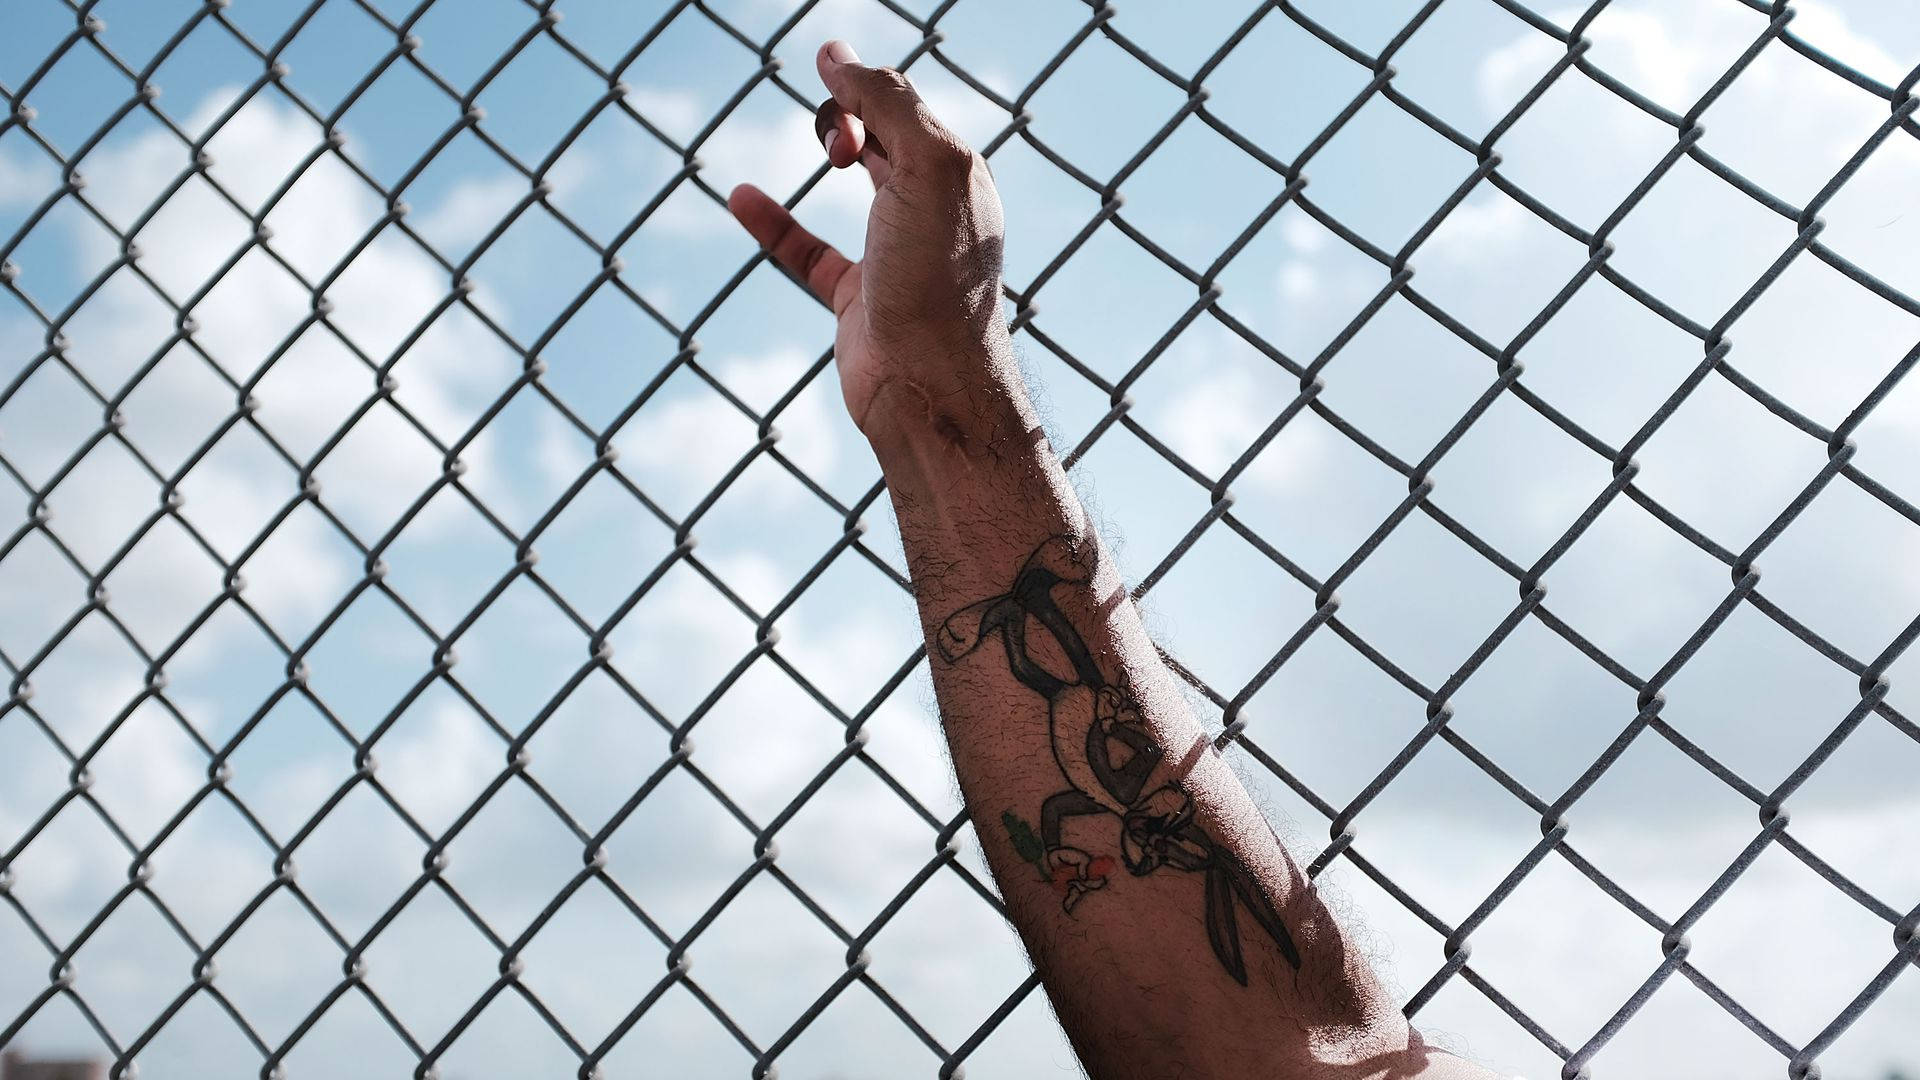 A man's arm holds a chain-link fence.